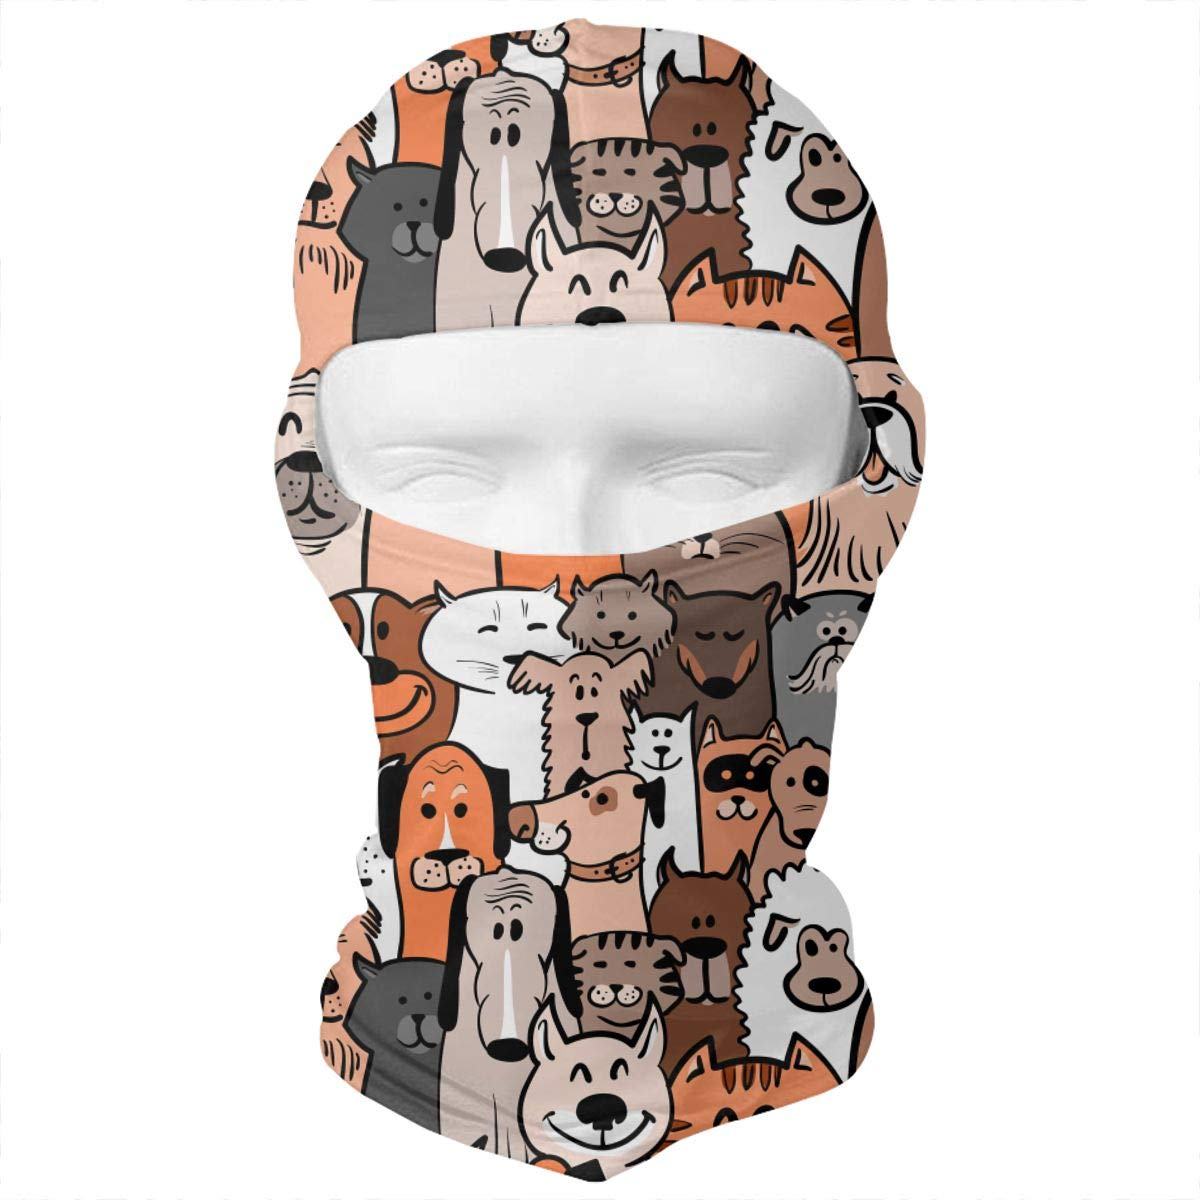 Doodle Dogs and Cats Seamless Outdoor Cycling Ski Motorcycle Balaclava Mask Sunscreen Hat Windproof Cap